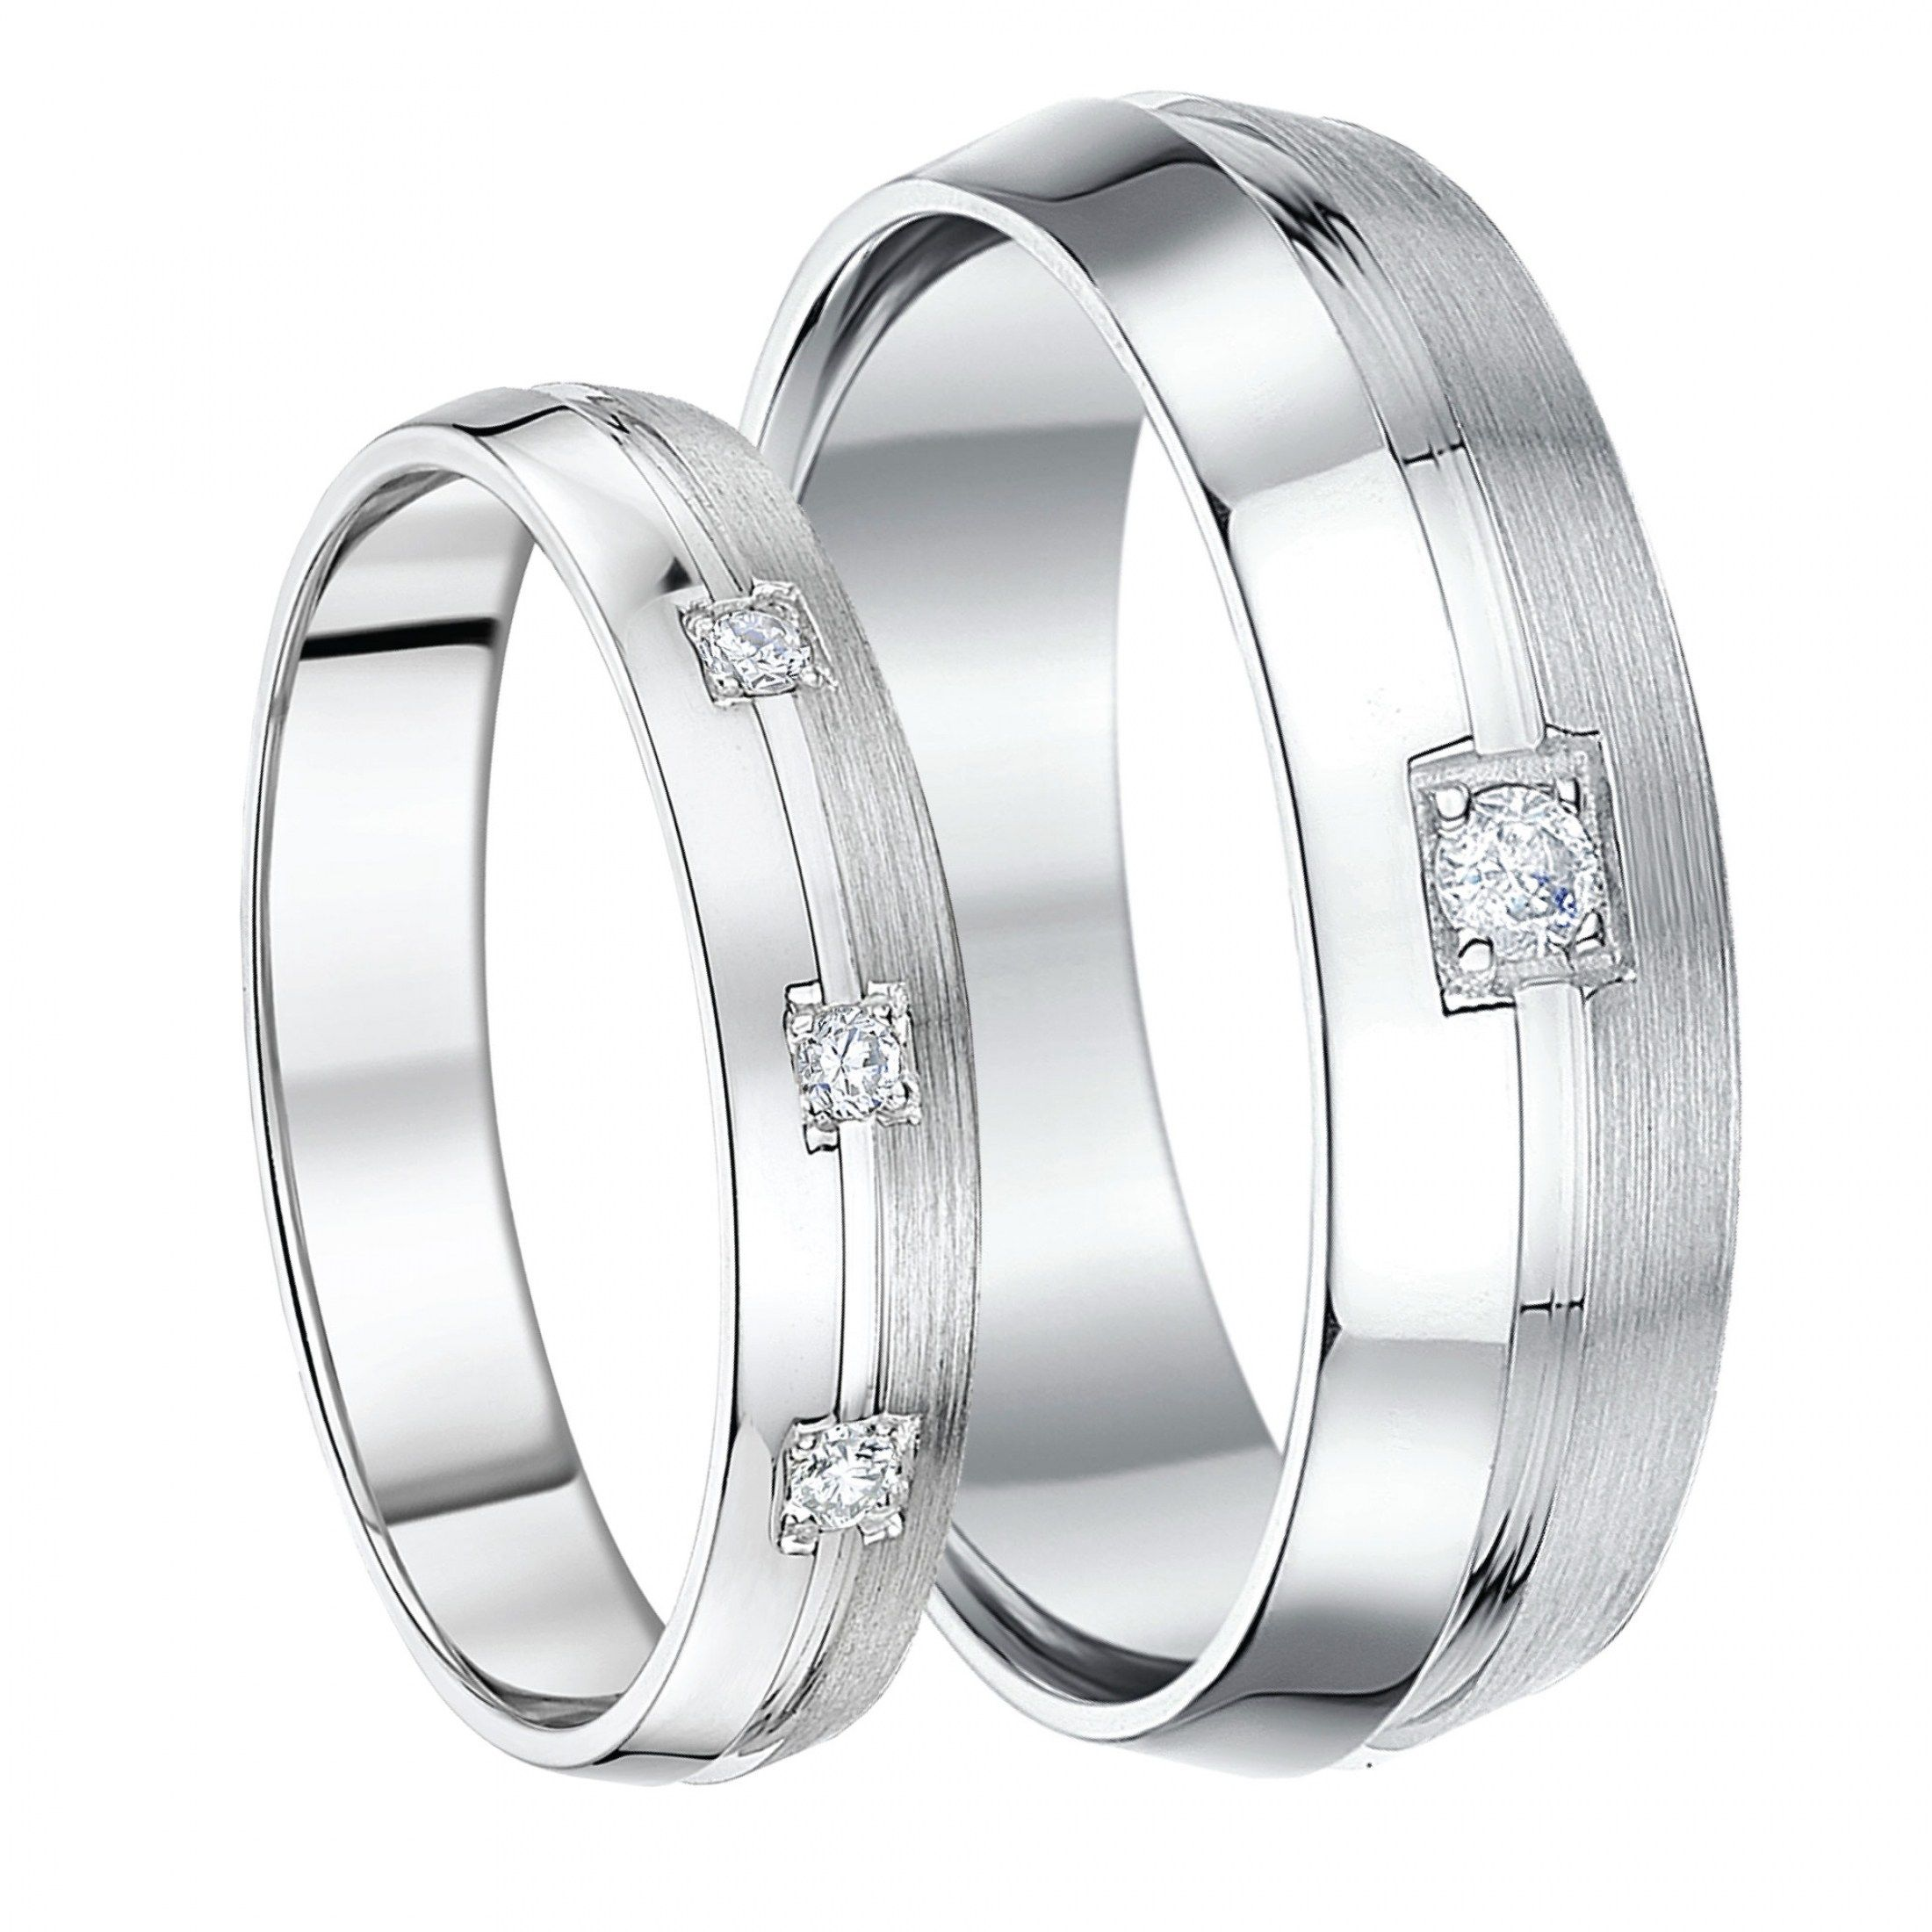 rings encordia glamour fm africa engagement jewellery wedding white gold solitaire love pave south we